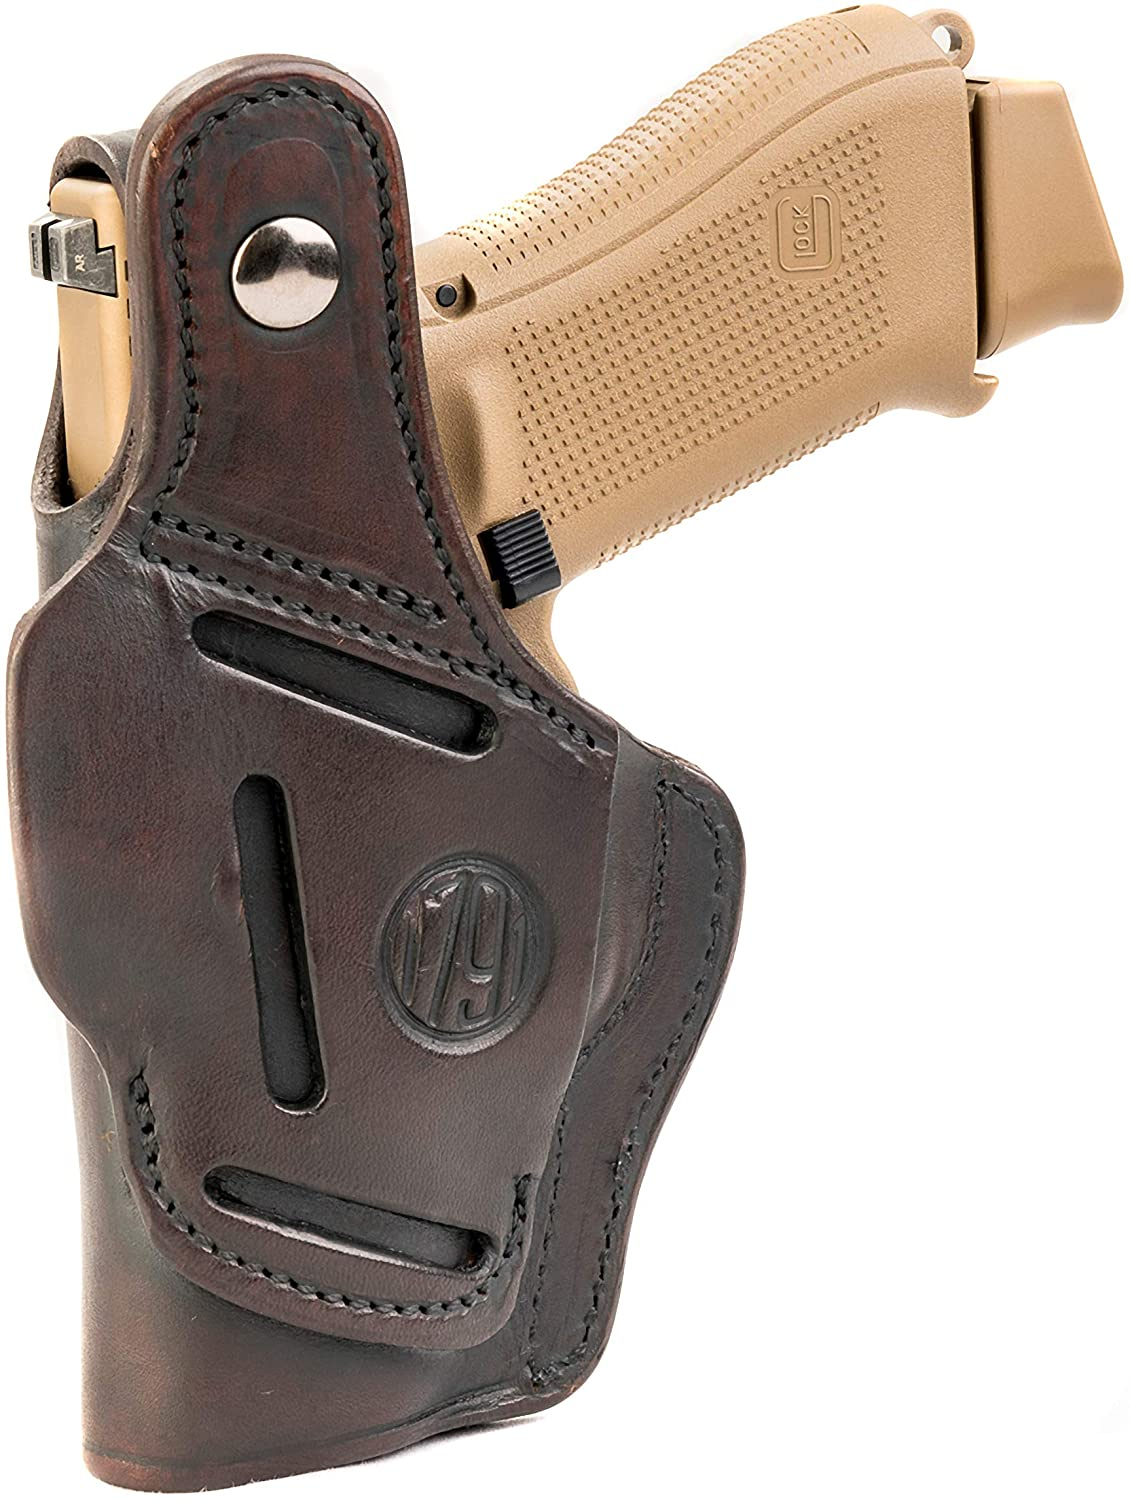 1791 GUNLEATHER Leather Gun Holster - 3 Way OWB Right Handed Thumb Break Holster - Fits Glock 17 19 22 23 32, Ruger SR9 SR22, Sig P225 P299, SW MP9 MP40, Taurus G2